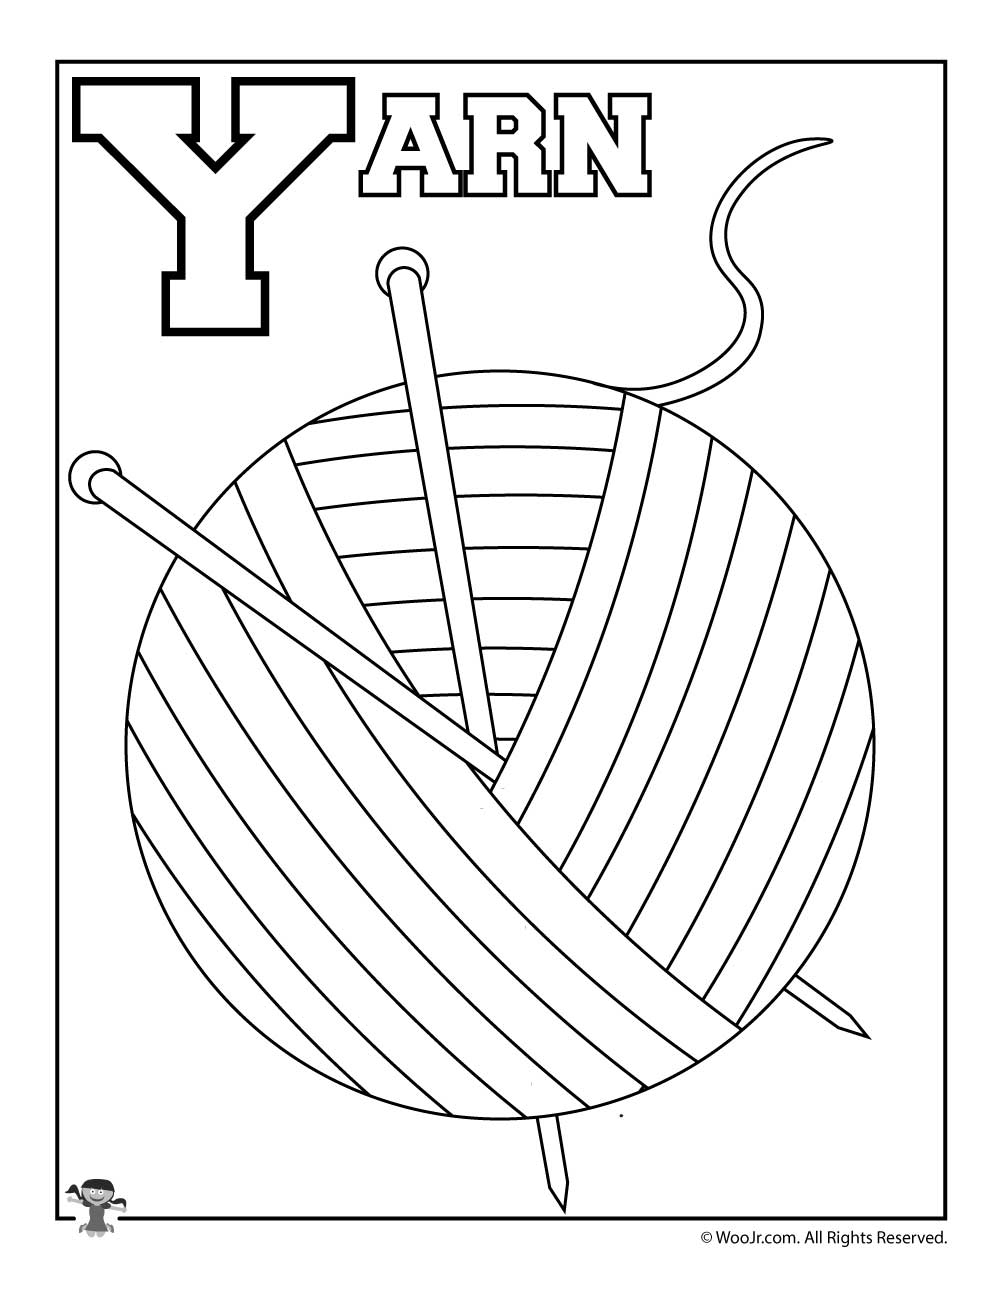 yarn coloring pages - 768×994